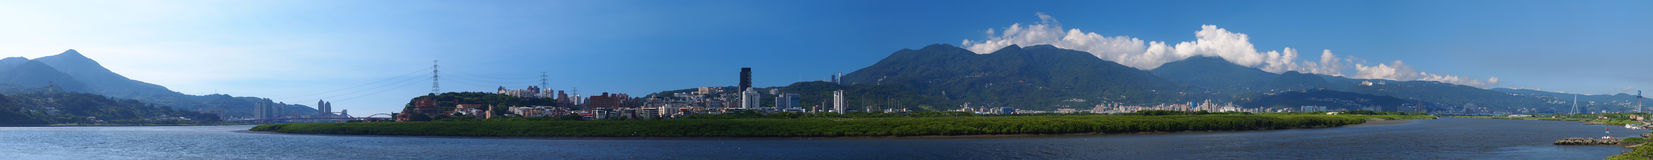 Panorama Picture of Taipei City Stock Photo